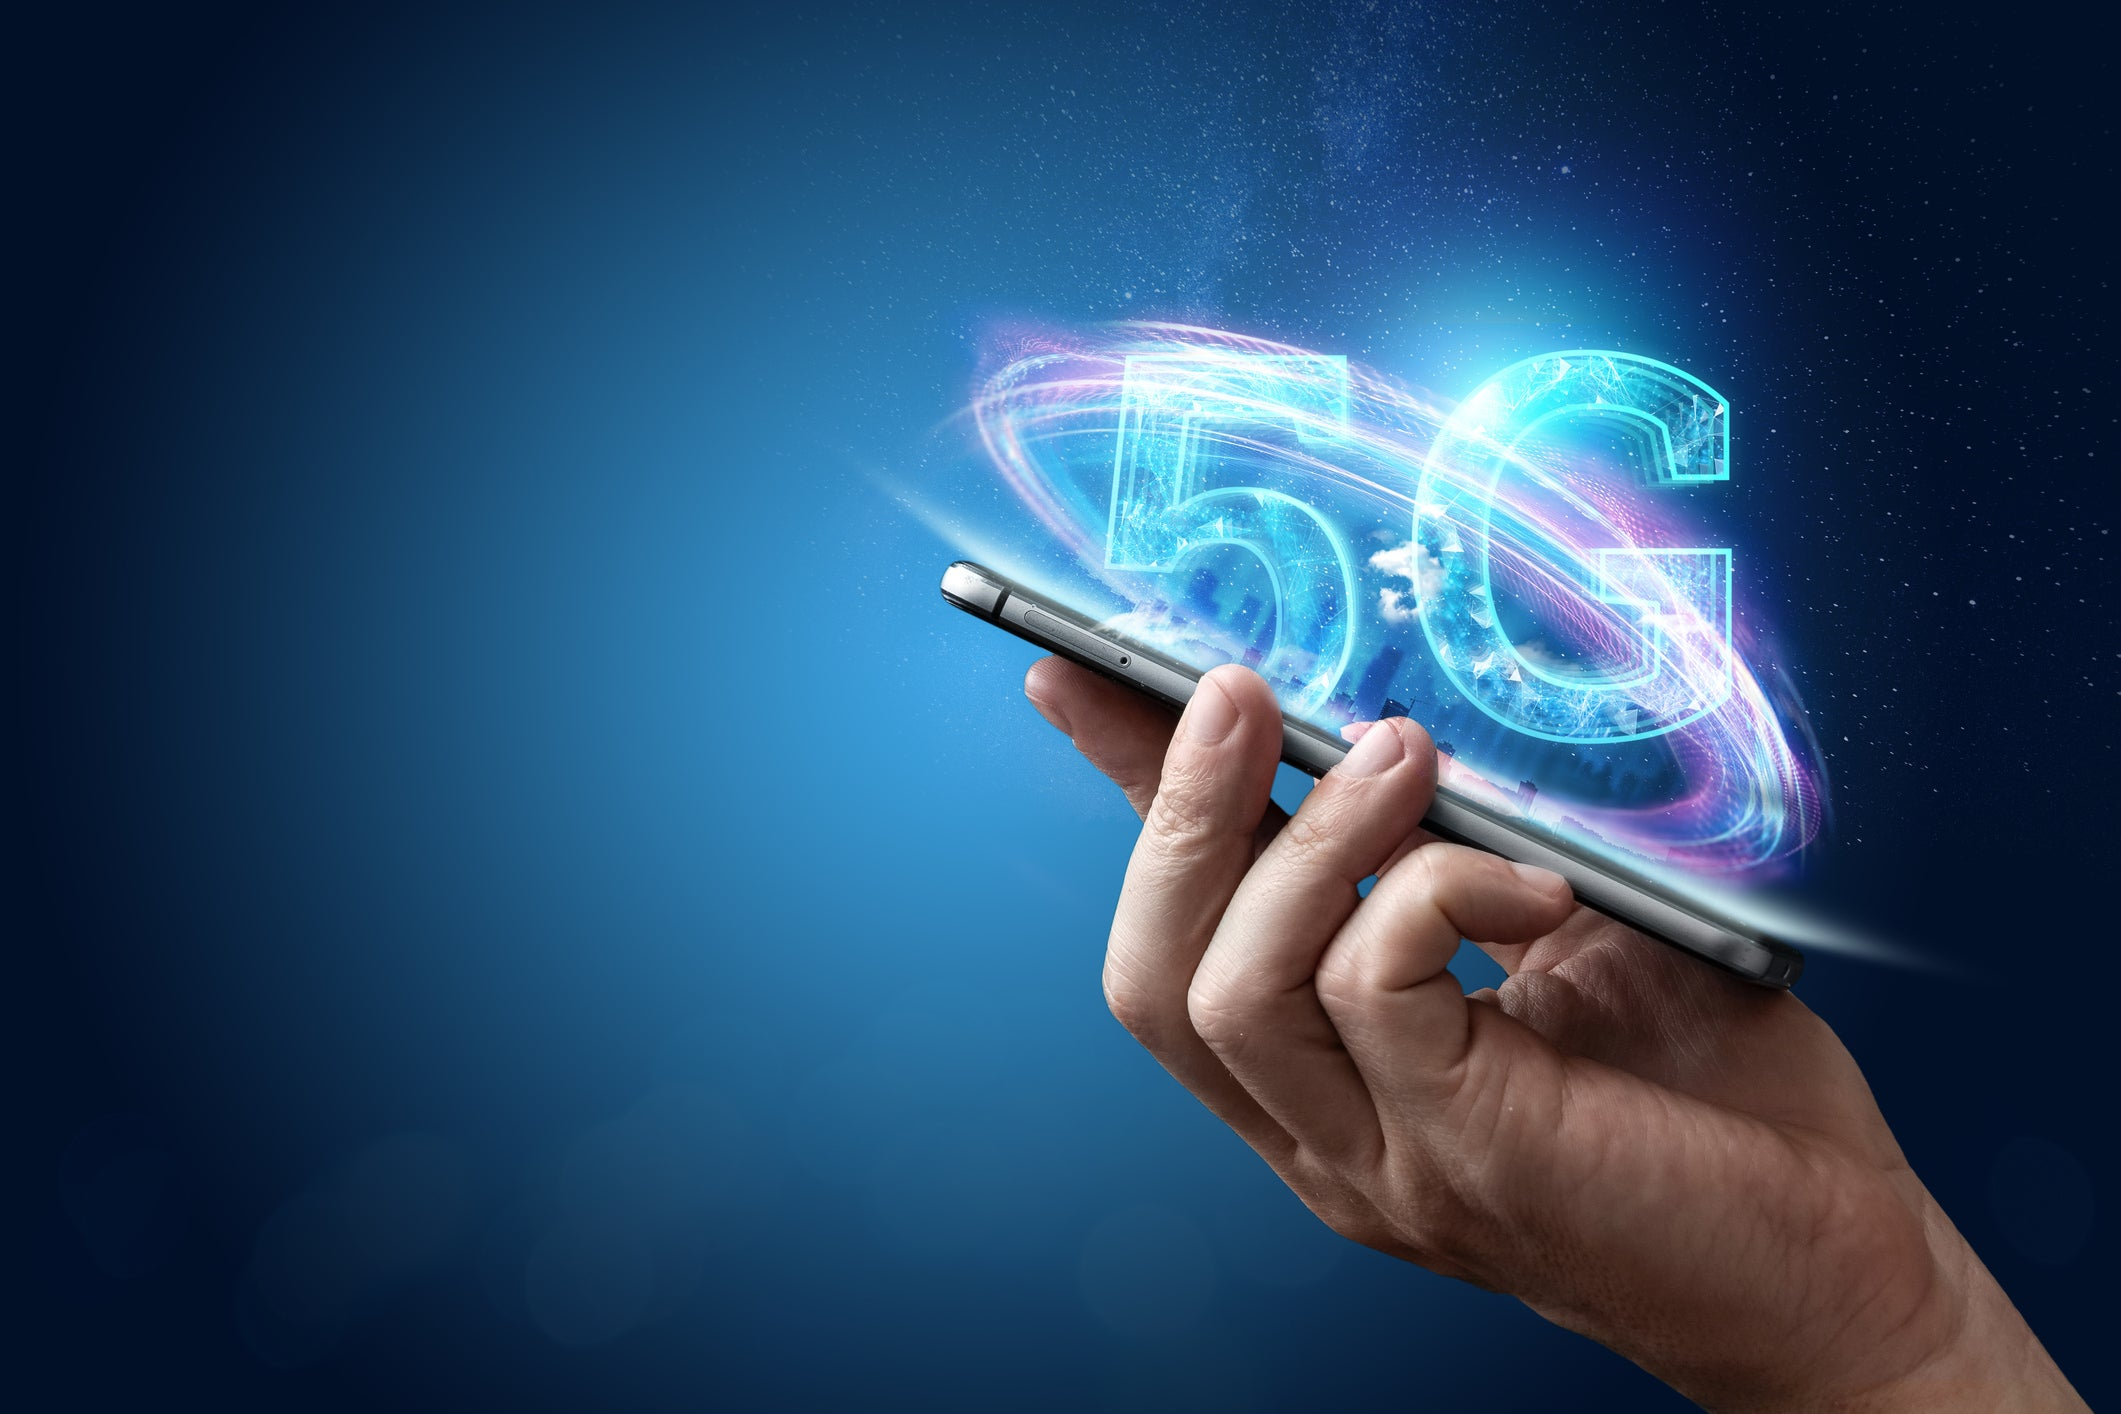 Apple's New iPhones Won't Be 5G Ready thumbnail